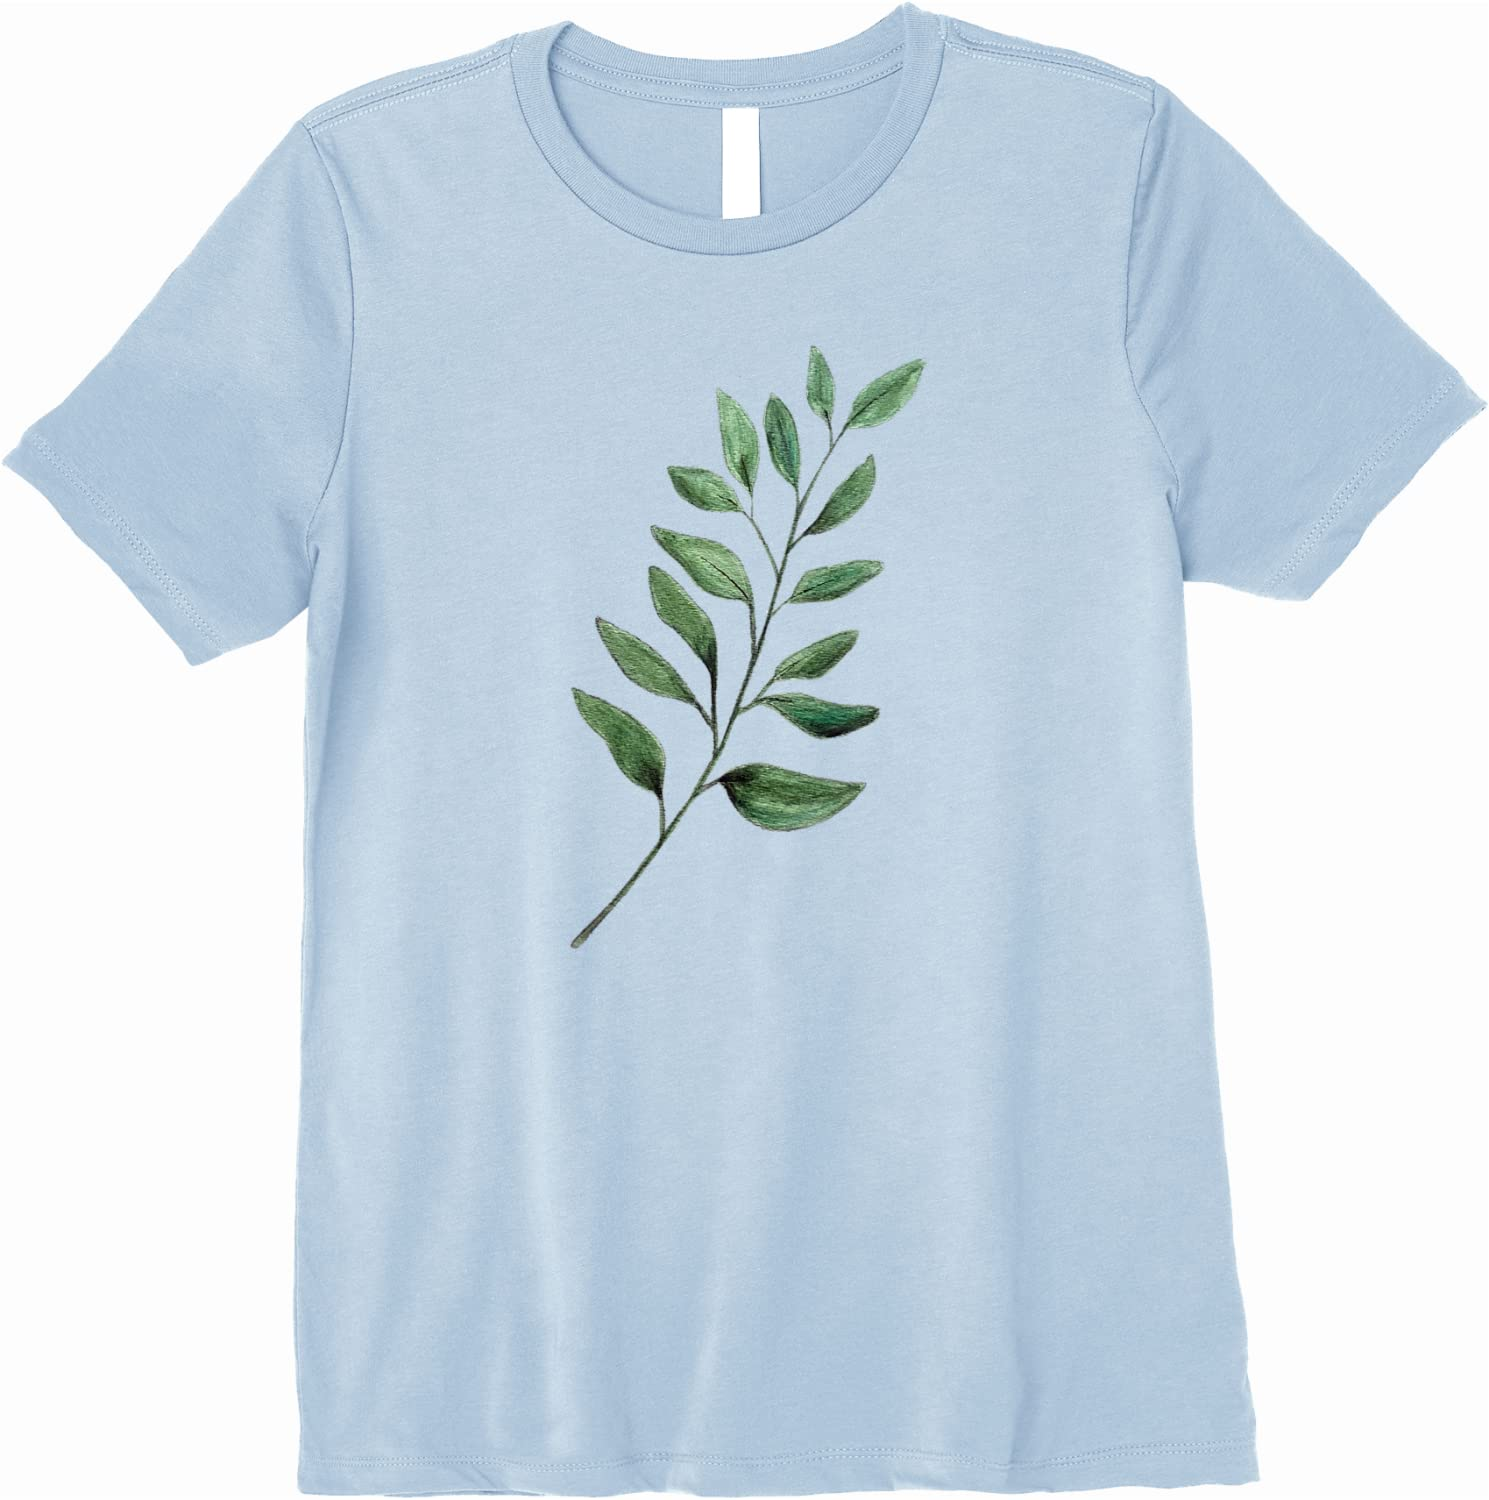 Blue Plant Leaves Leaf Name youth Personalized Gift Cute Unisex Shirt Toddler Kids Child Childrens Clothing Clothes Tshirt gift Baby shirts